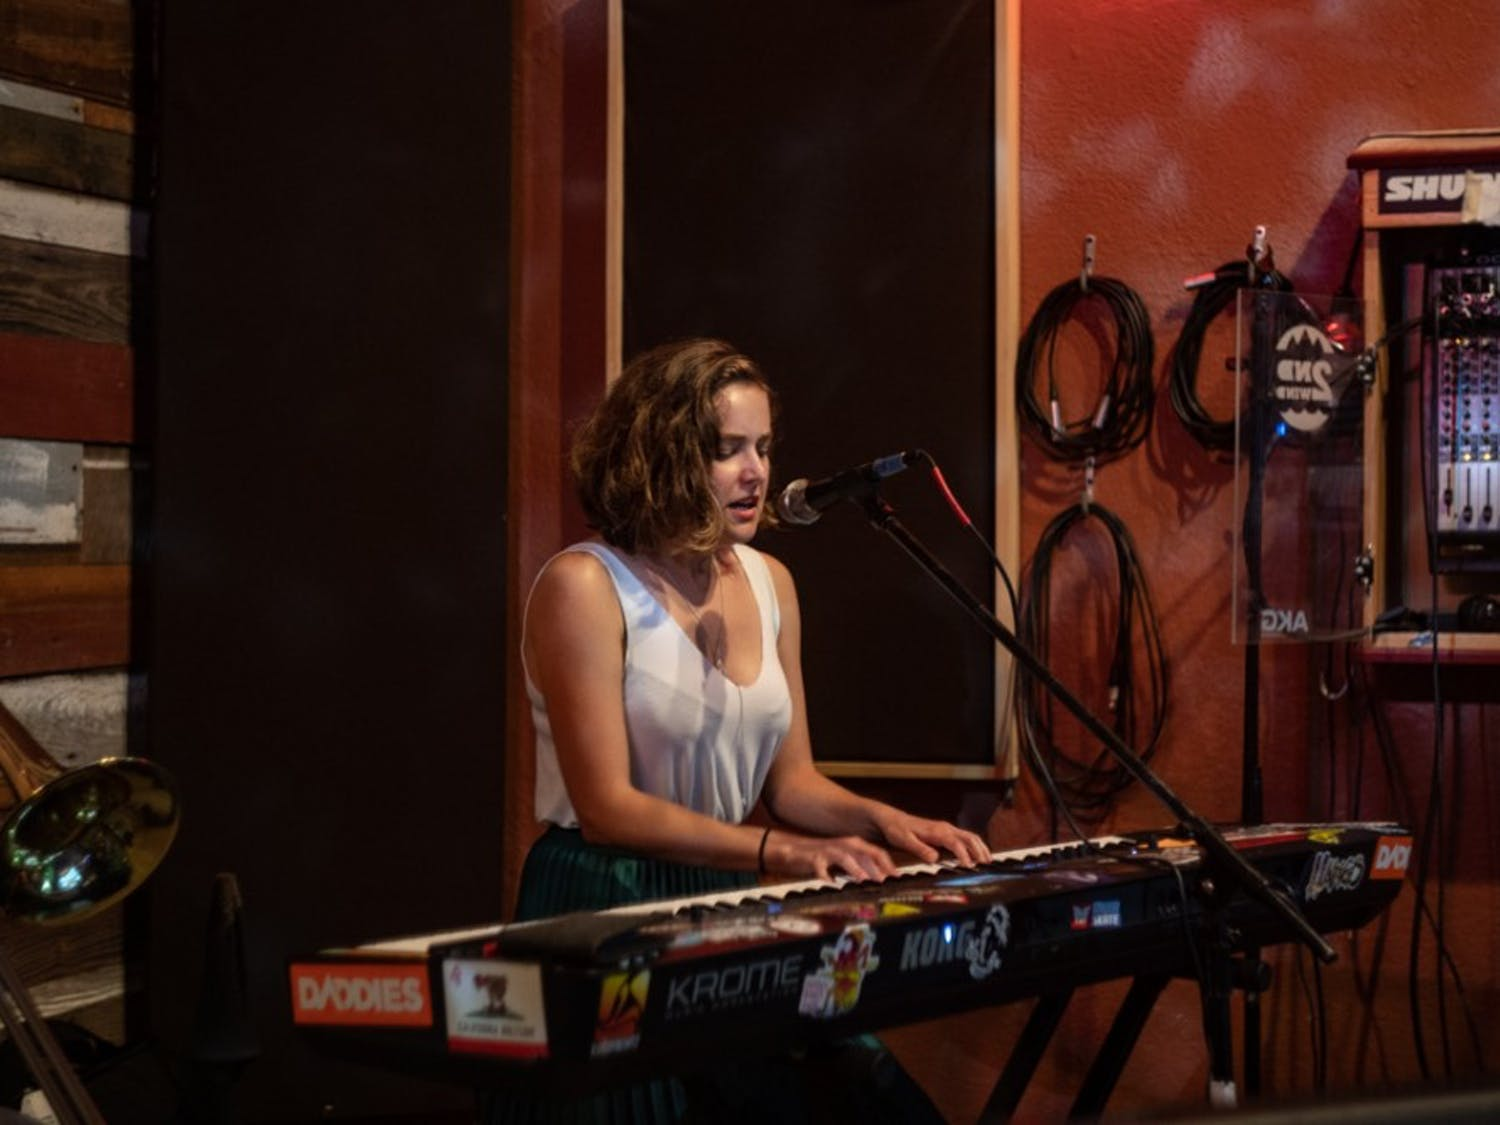 Rachel Despard is a music student at UNC and a local musician. Despard performs and records original work with her band, while also balancing music studies. Photo courtesy of Spencer Zachary.